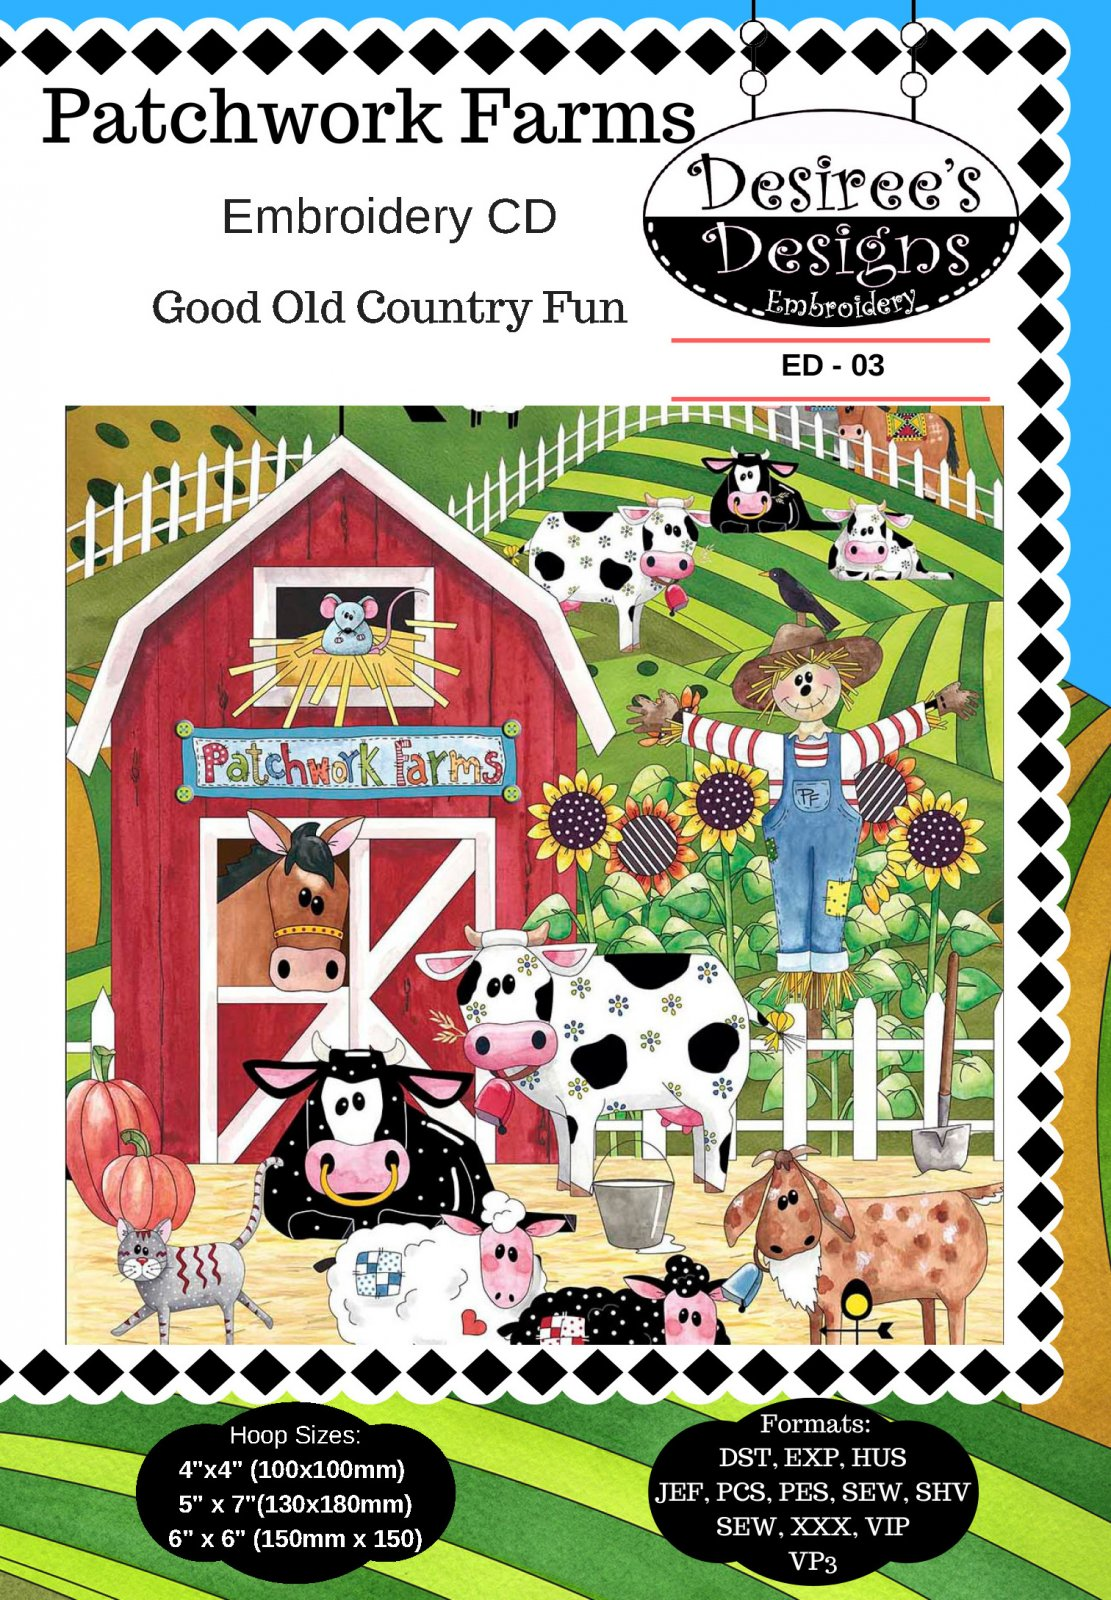 Patchwork Farms Embroidery Download (ED-03-E)